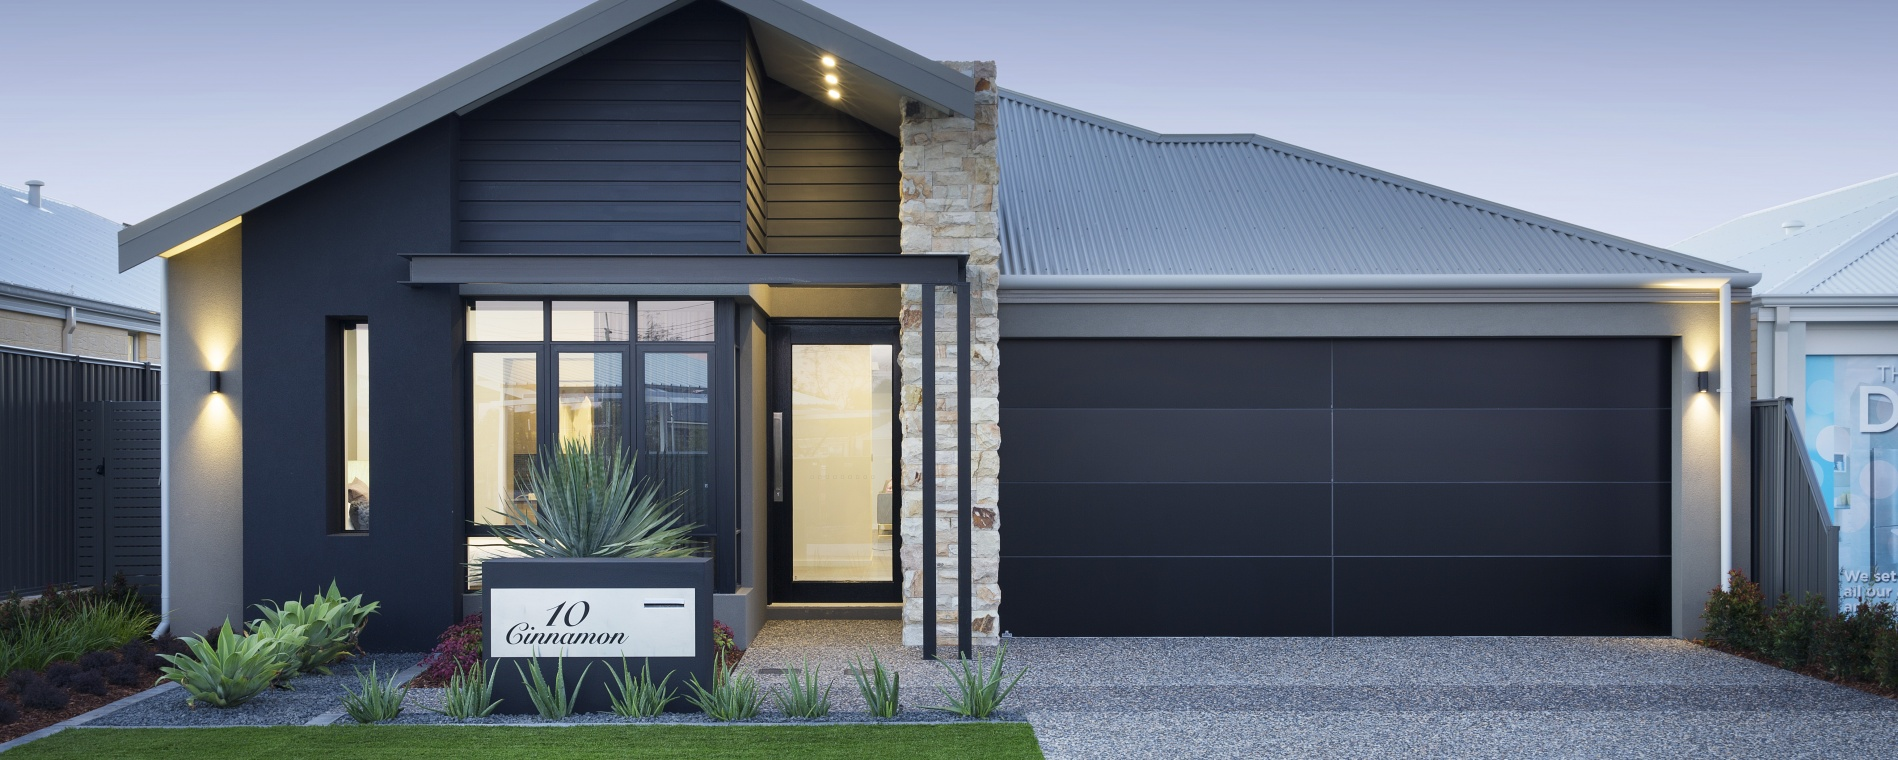 Home designs home group wa for Platinum home designs llanelli